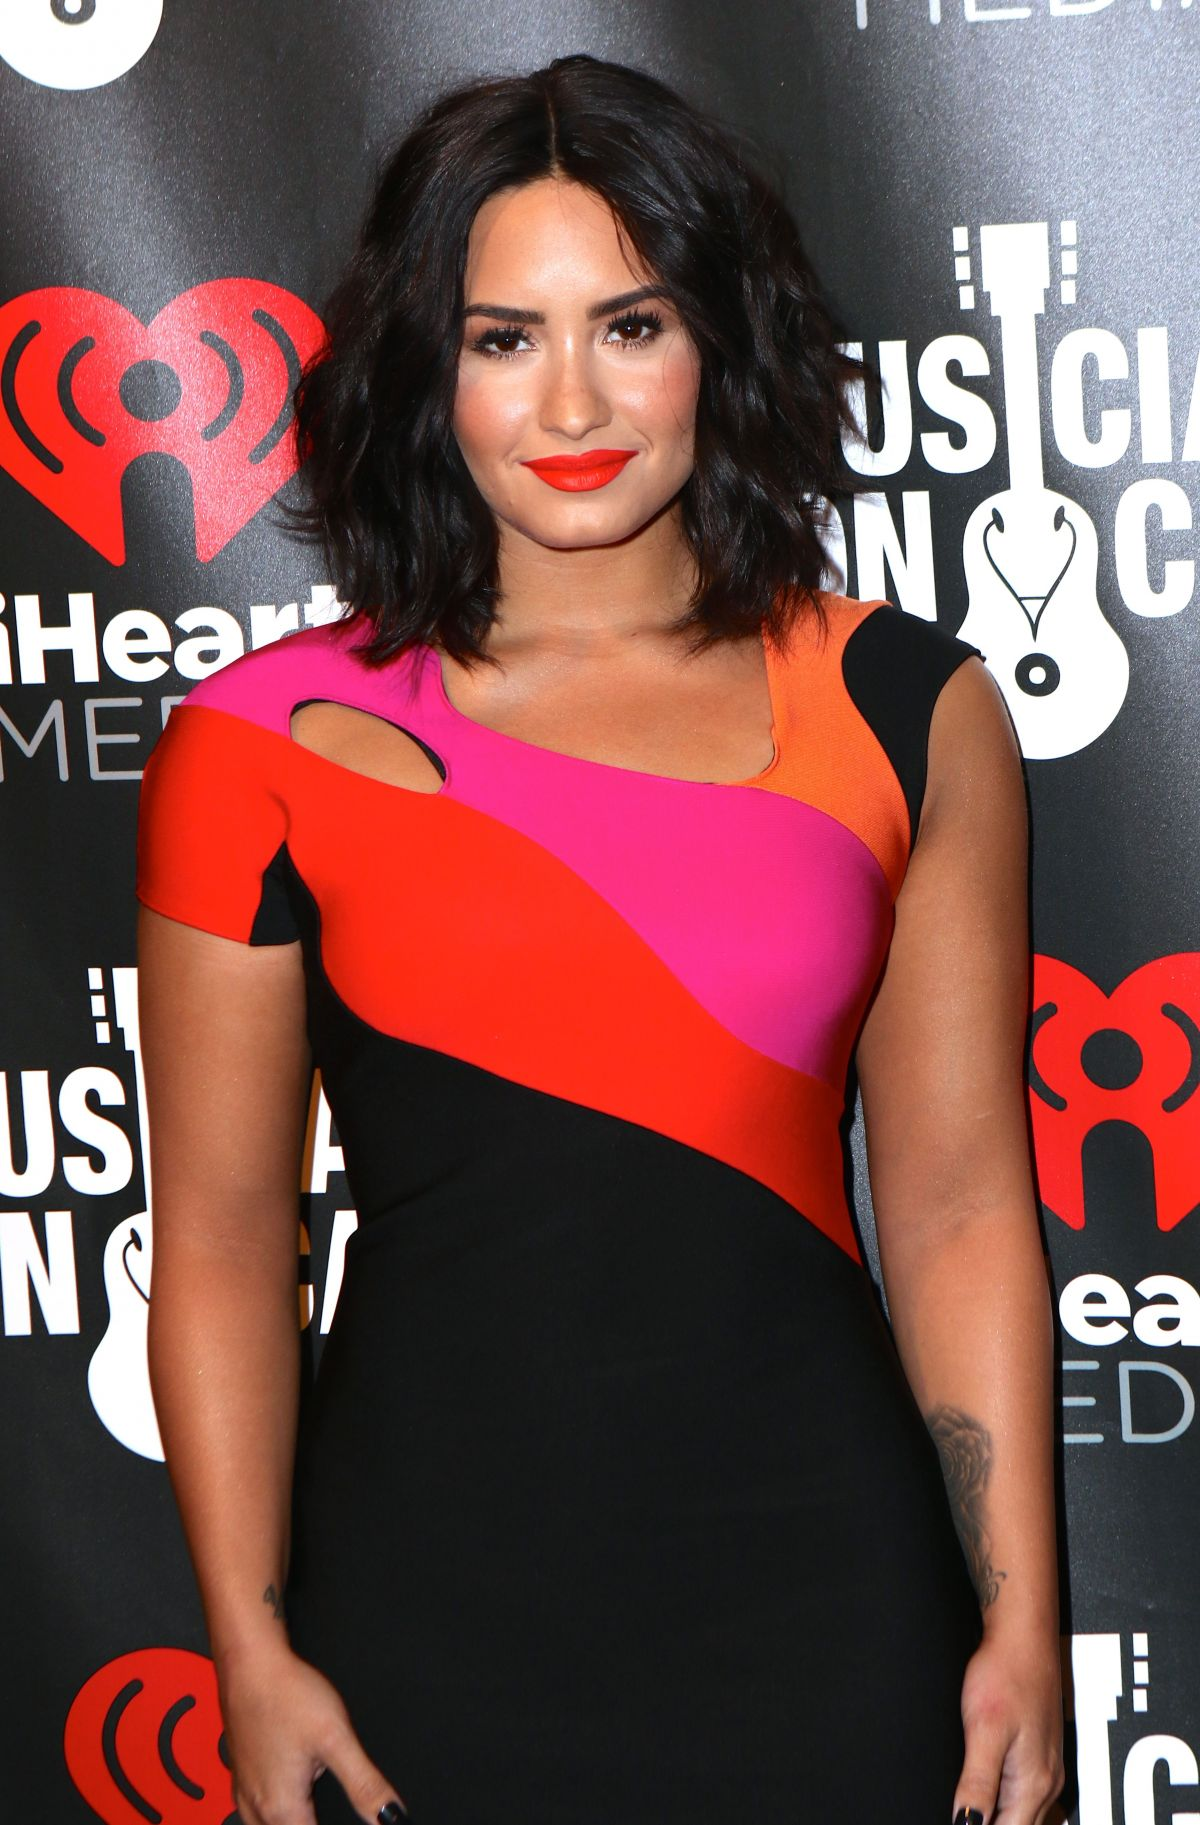 Demi Lovato At A Night To Celebrate Elvis Duran in NYC